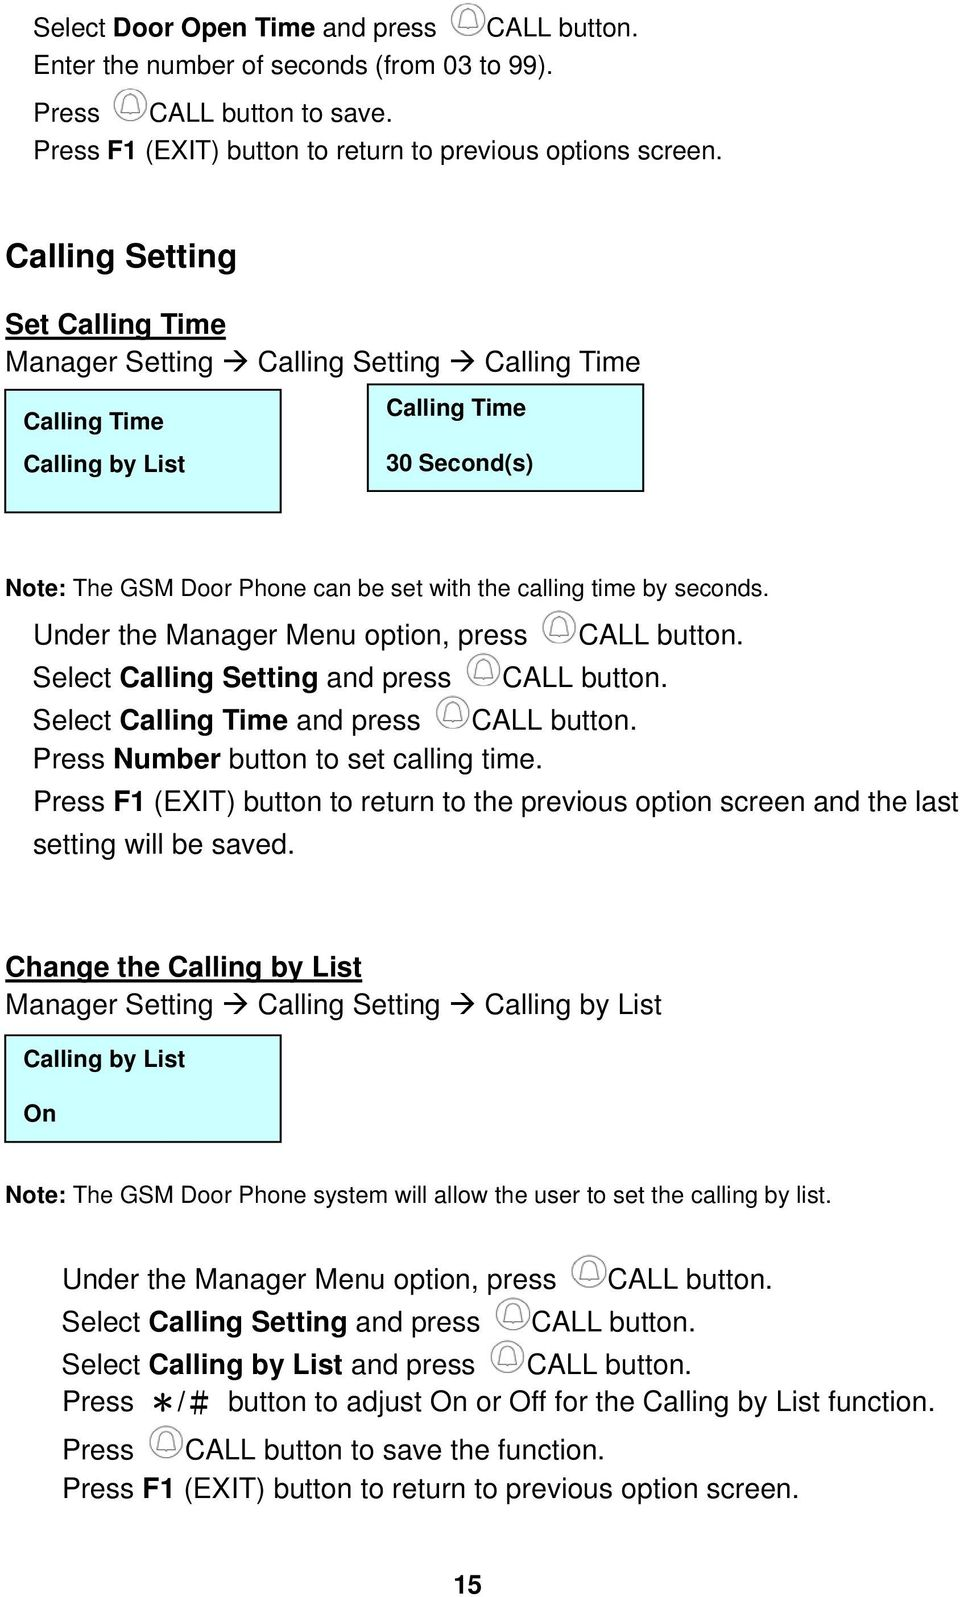 seconds. Under the Manager Menu option, press CALL button. Select Calling Setting and press CALL button. Select Calling Time and press CALL button. Press Number button to set calling time.